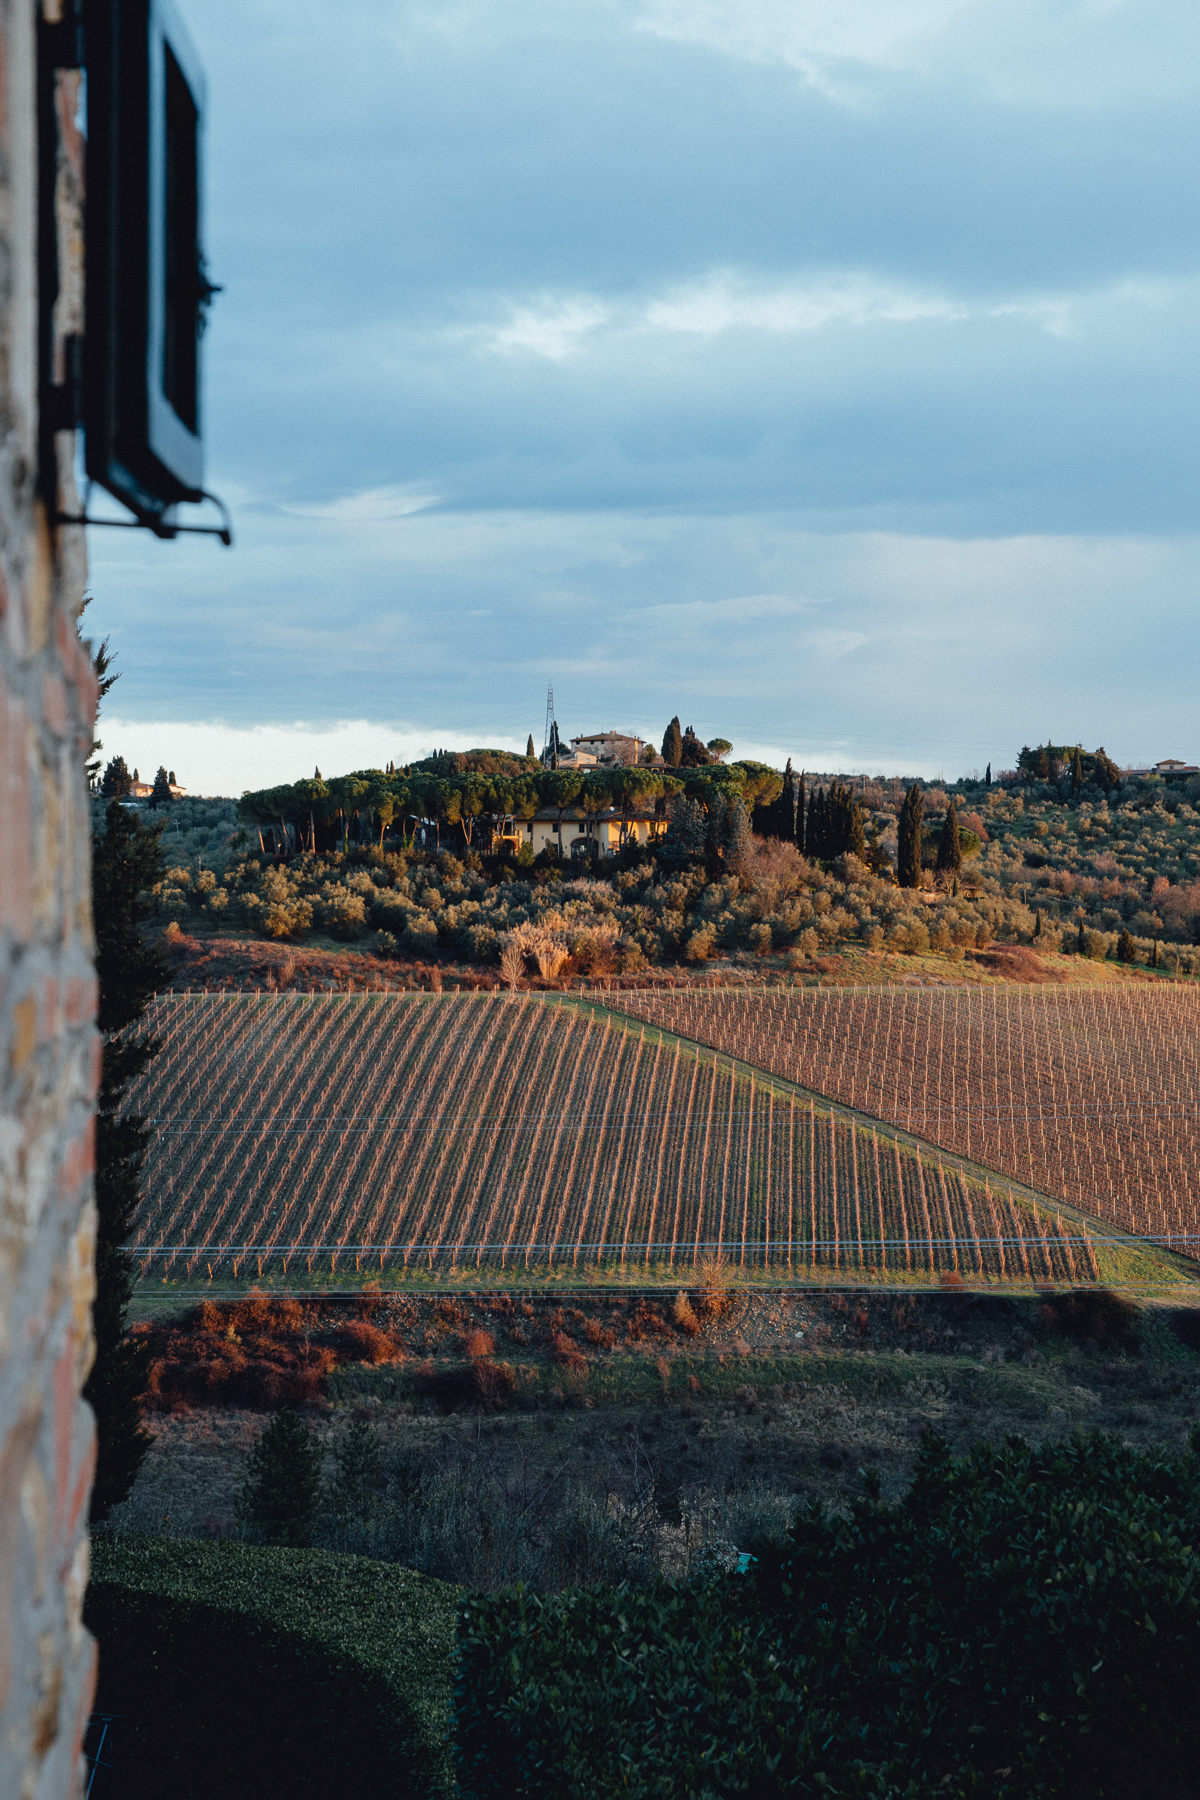 Sunrise From The Bedroom Window at La Quercia Estate, Italy, February 2017